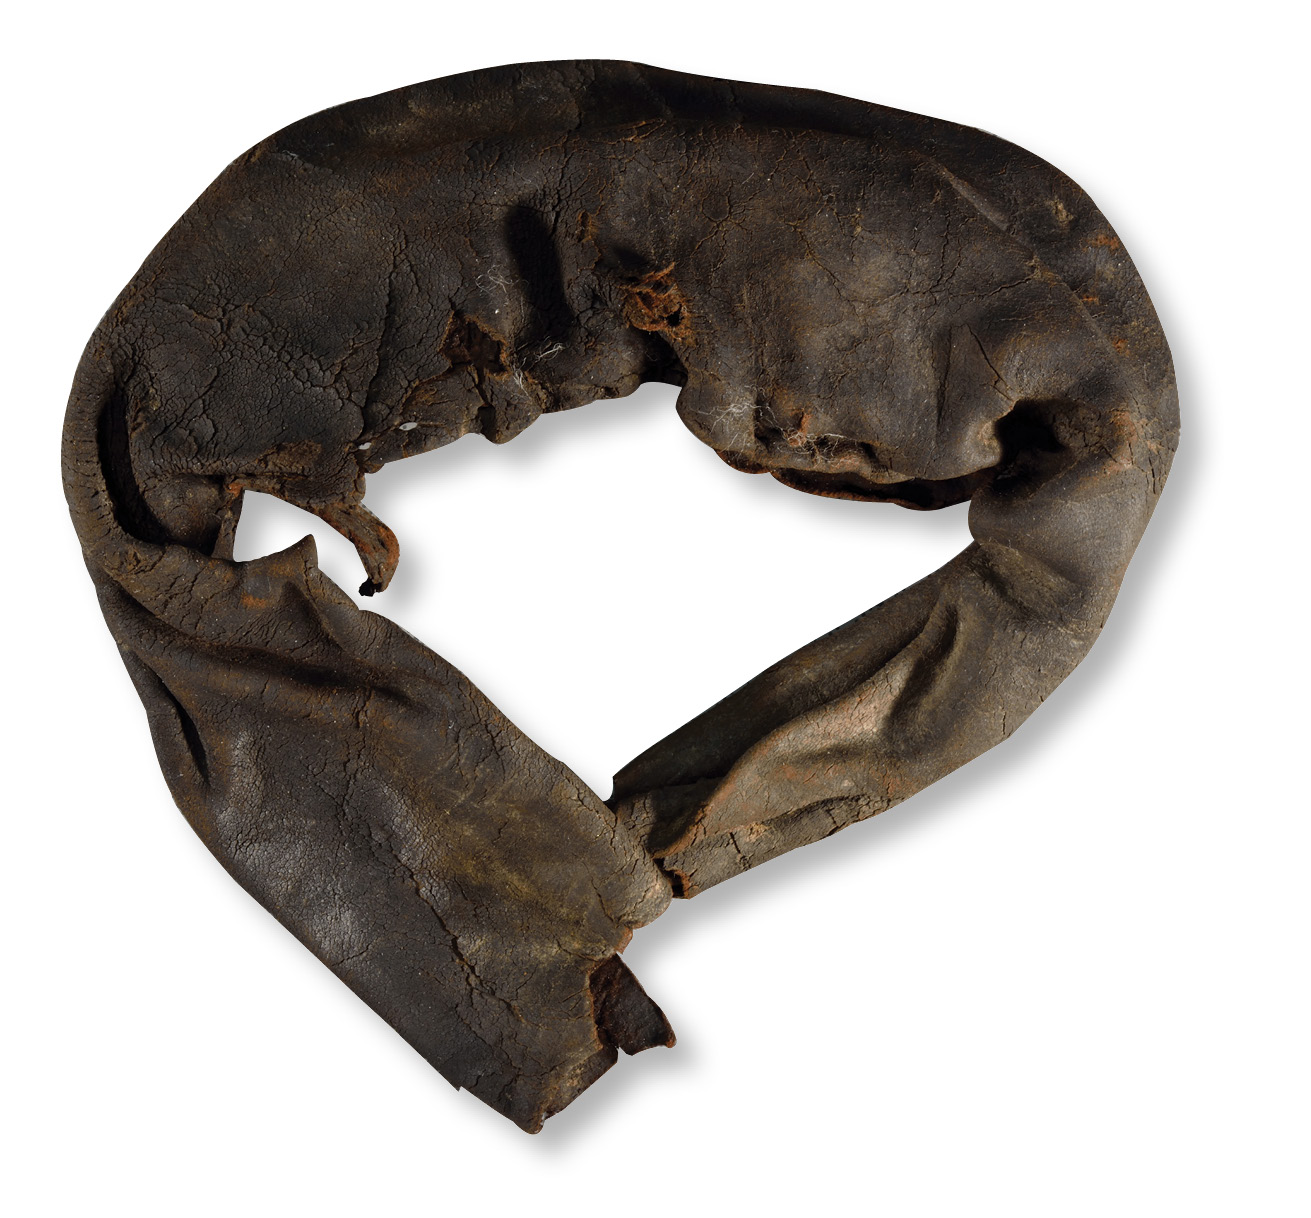 left One of two Roman boxing gloves that were found during the investigation of a hastily abandoned barrack building. The objects are the only known examples of their kind.